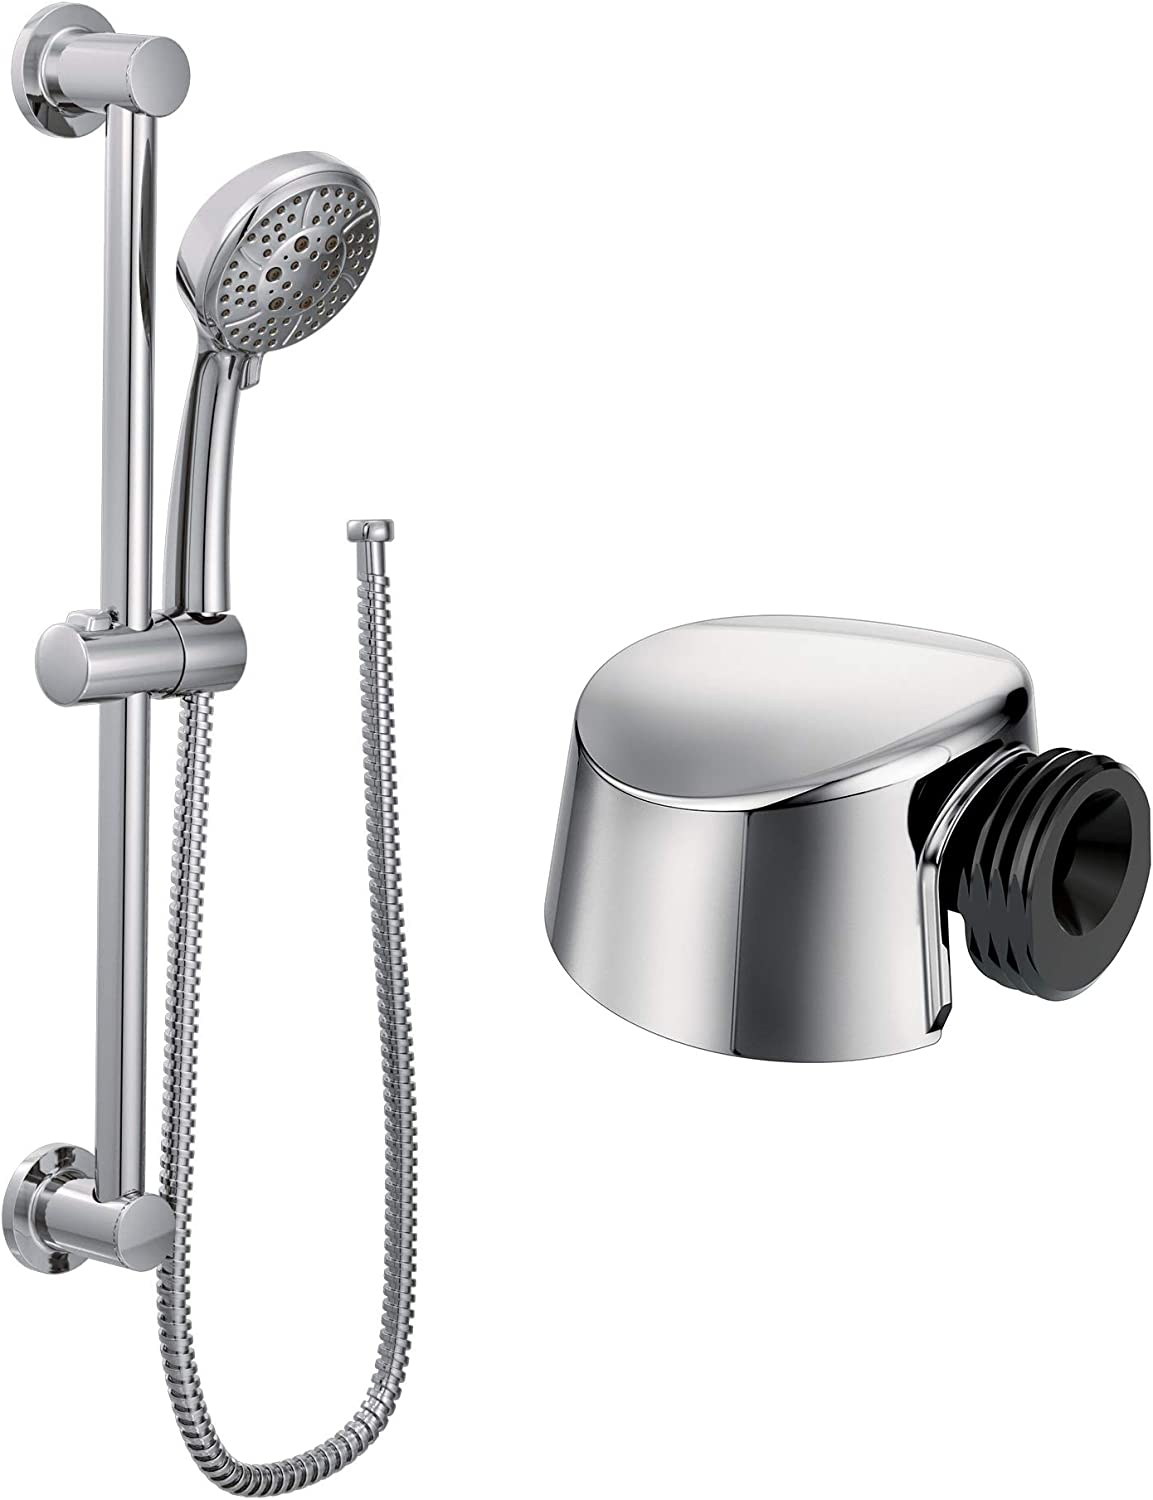 Moen A725Drop 4 years warranty Ell for Handheld N Showerhead Classic Brushed Save money